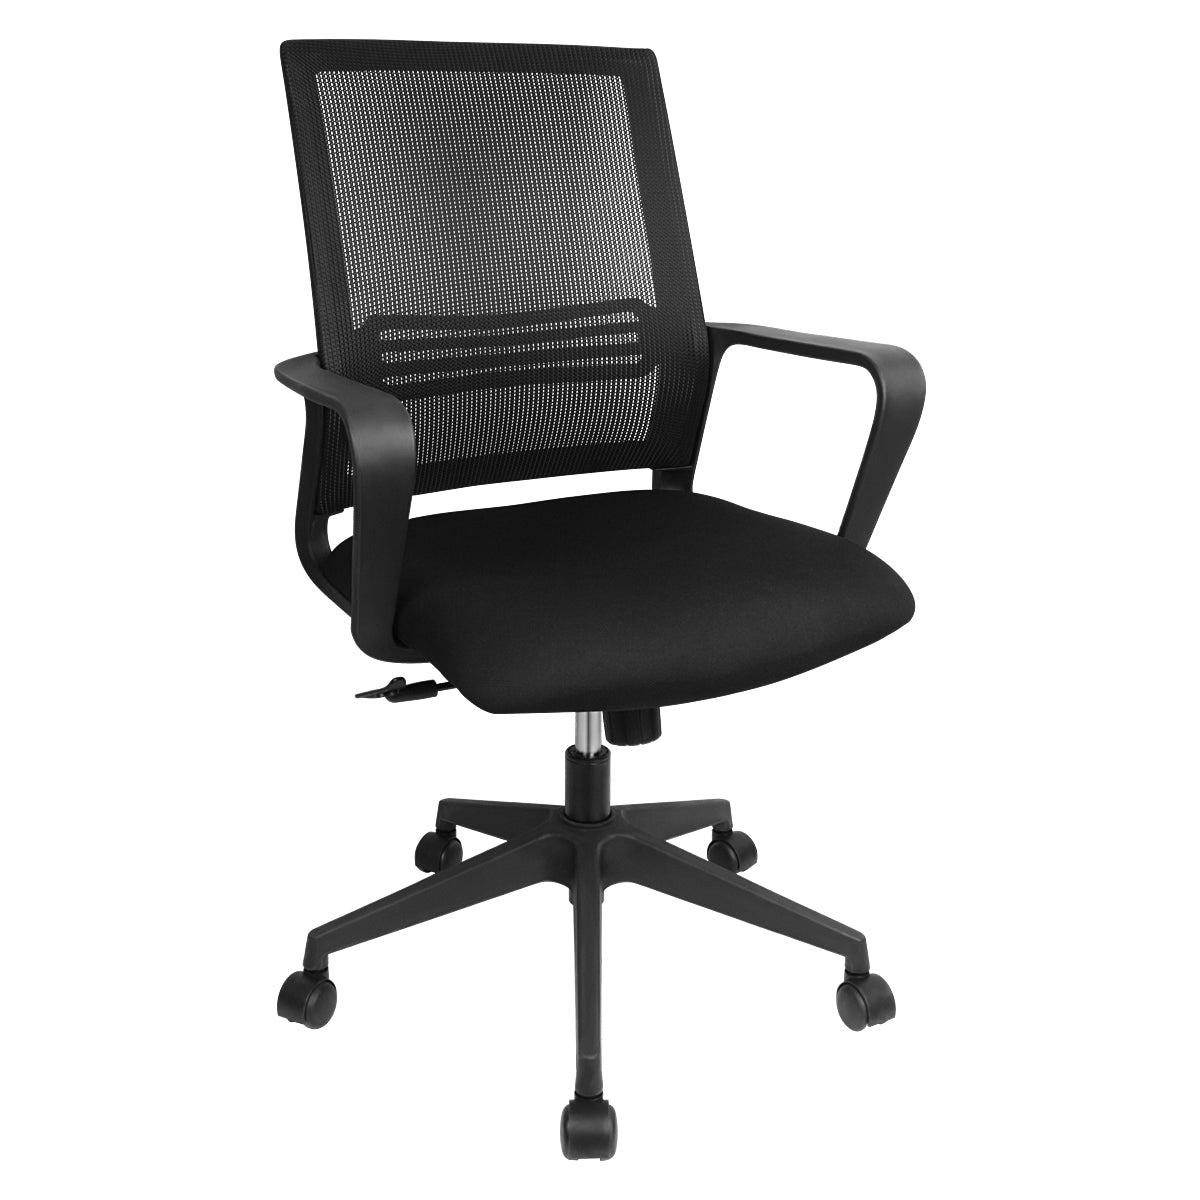 BARTONER Mesh High Back With Armrest Seat Height Tilt Office Chair